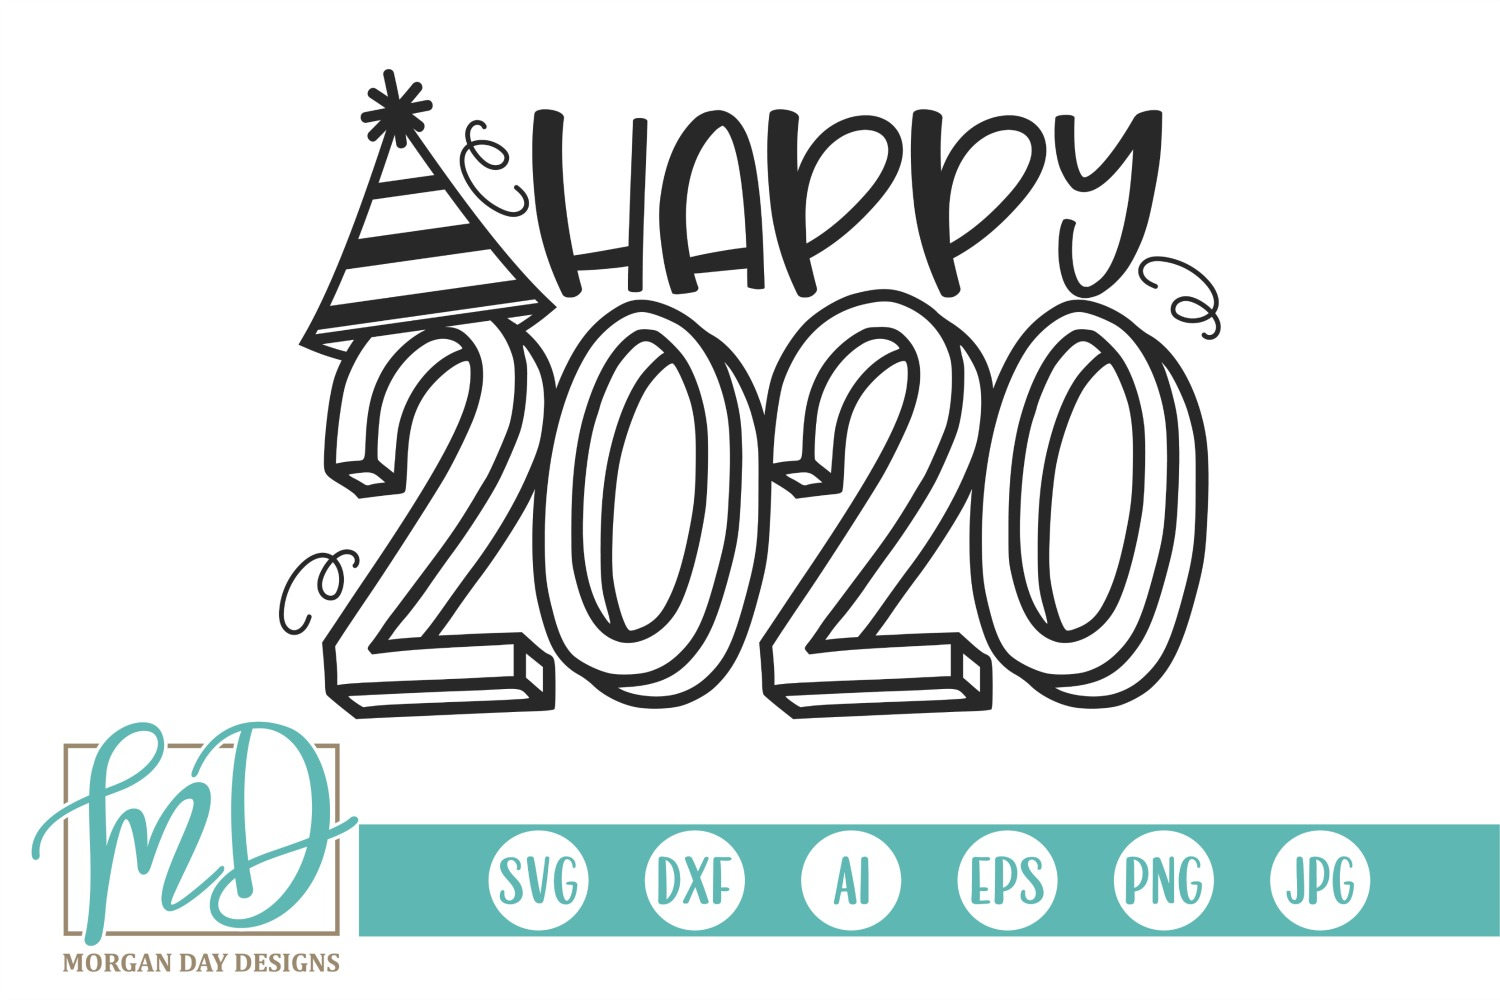 New Years - Happy 2020 SVG example image 1